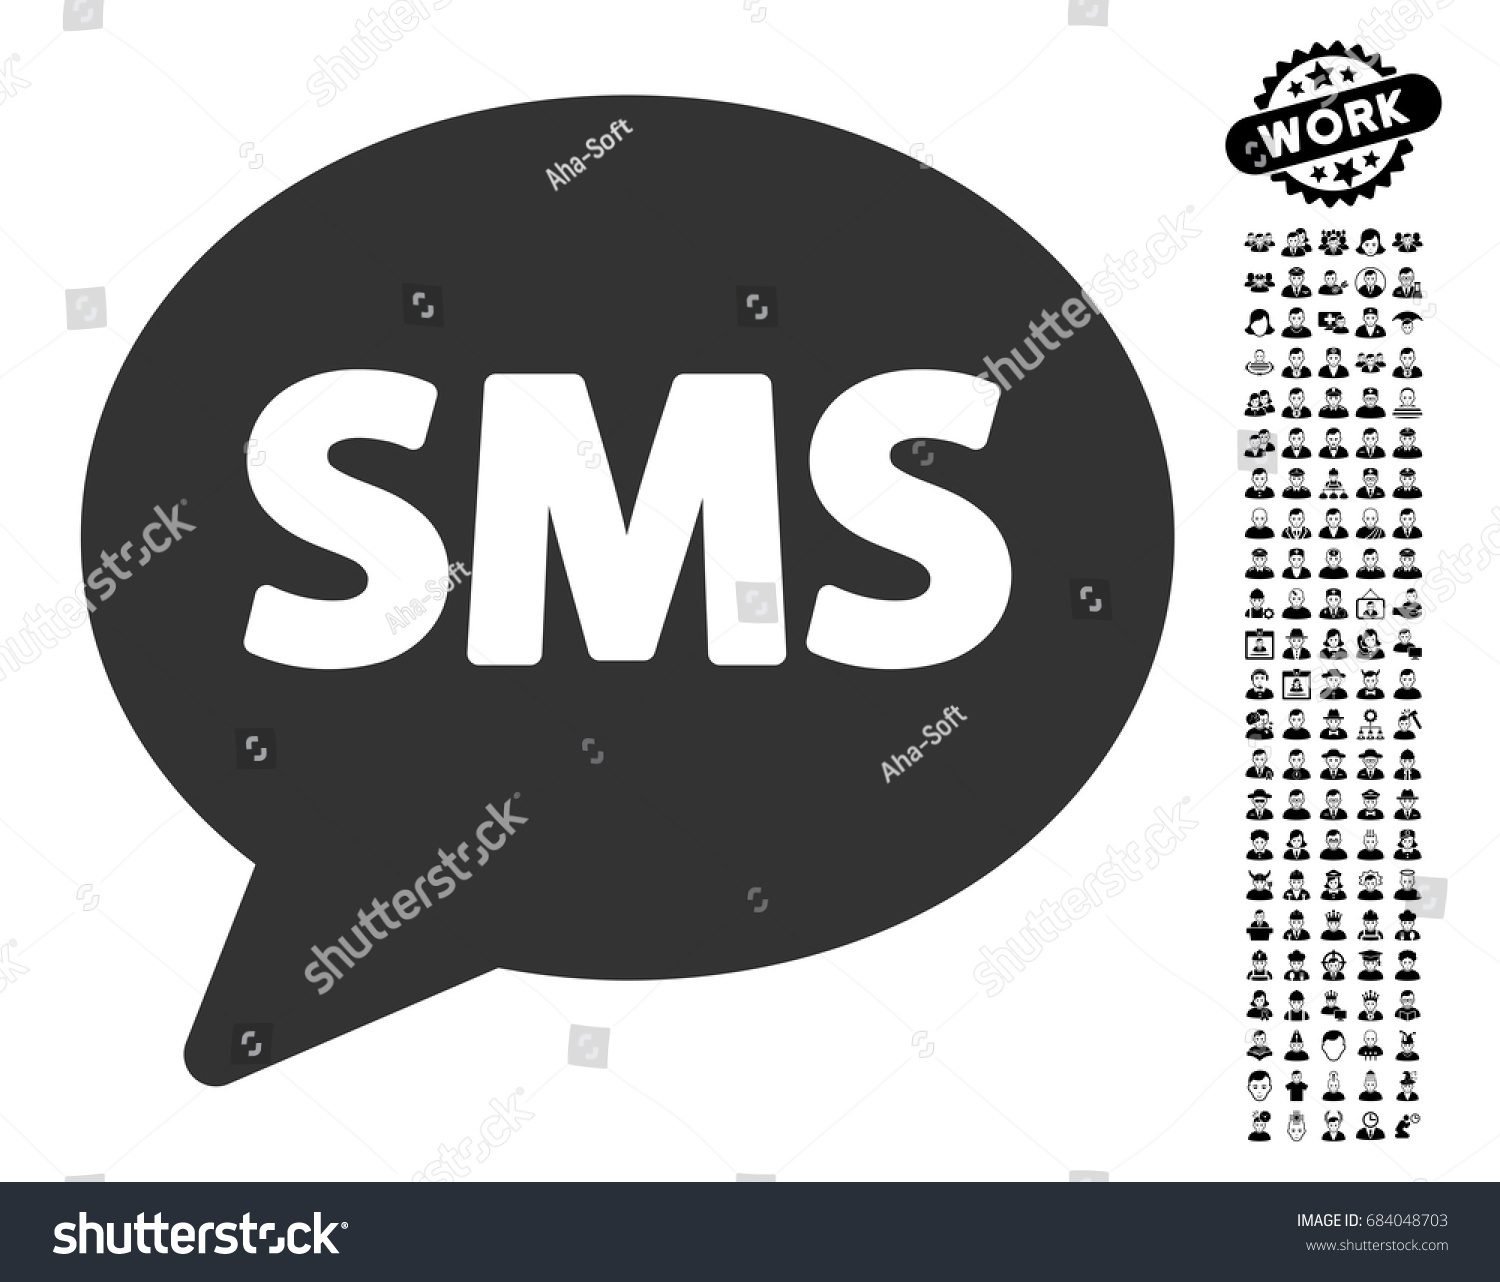 Sms icon black bonus job symbols stock vector 684048703 shutterstock sms icon with black bonus job symbols sms vector illustration style is a flat gray biocorpaavc Images